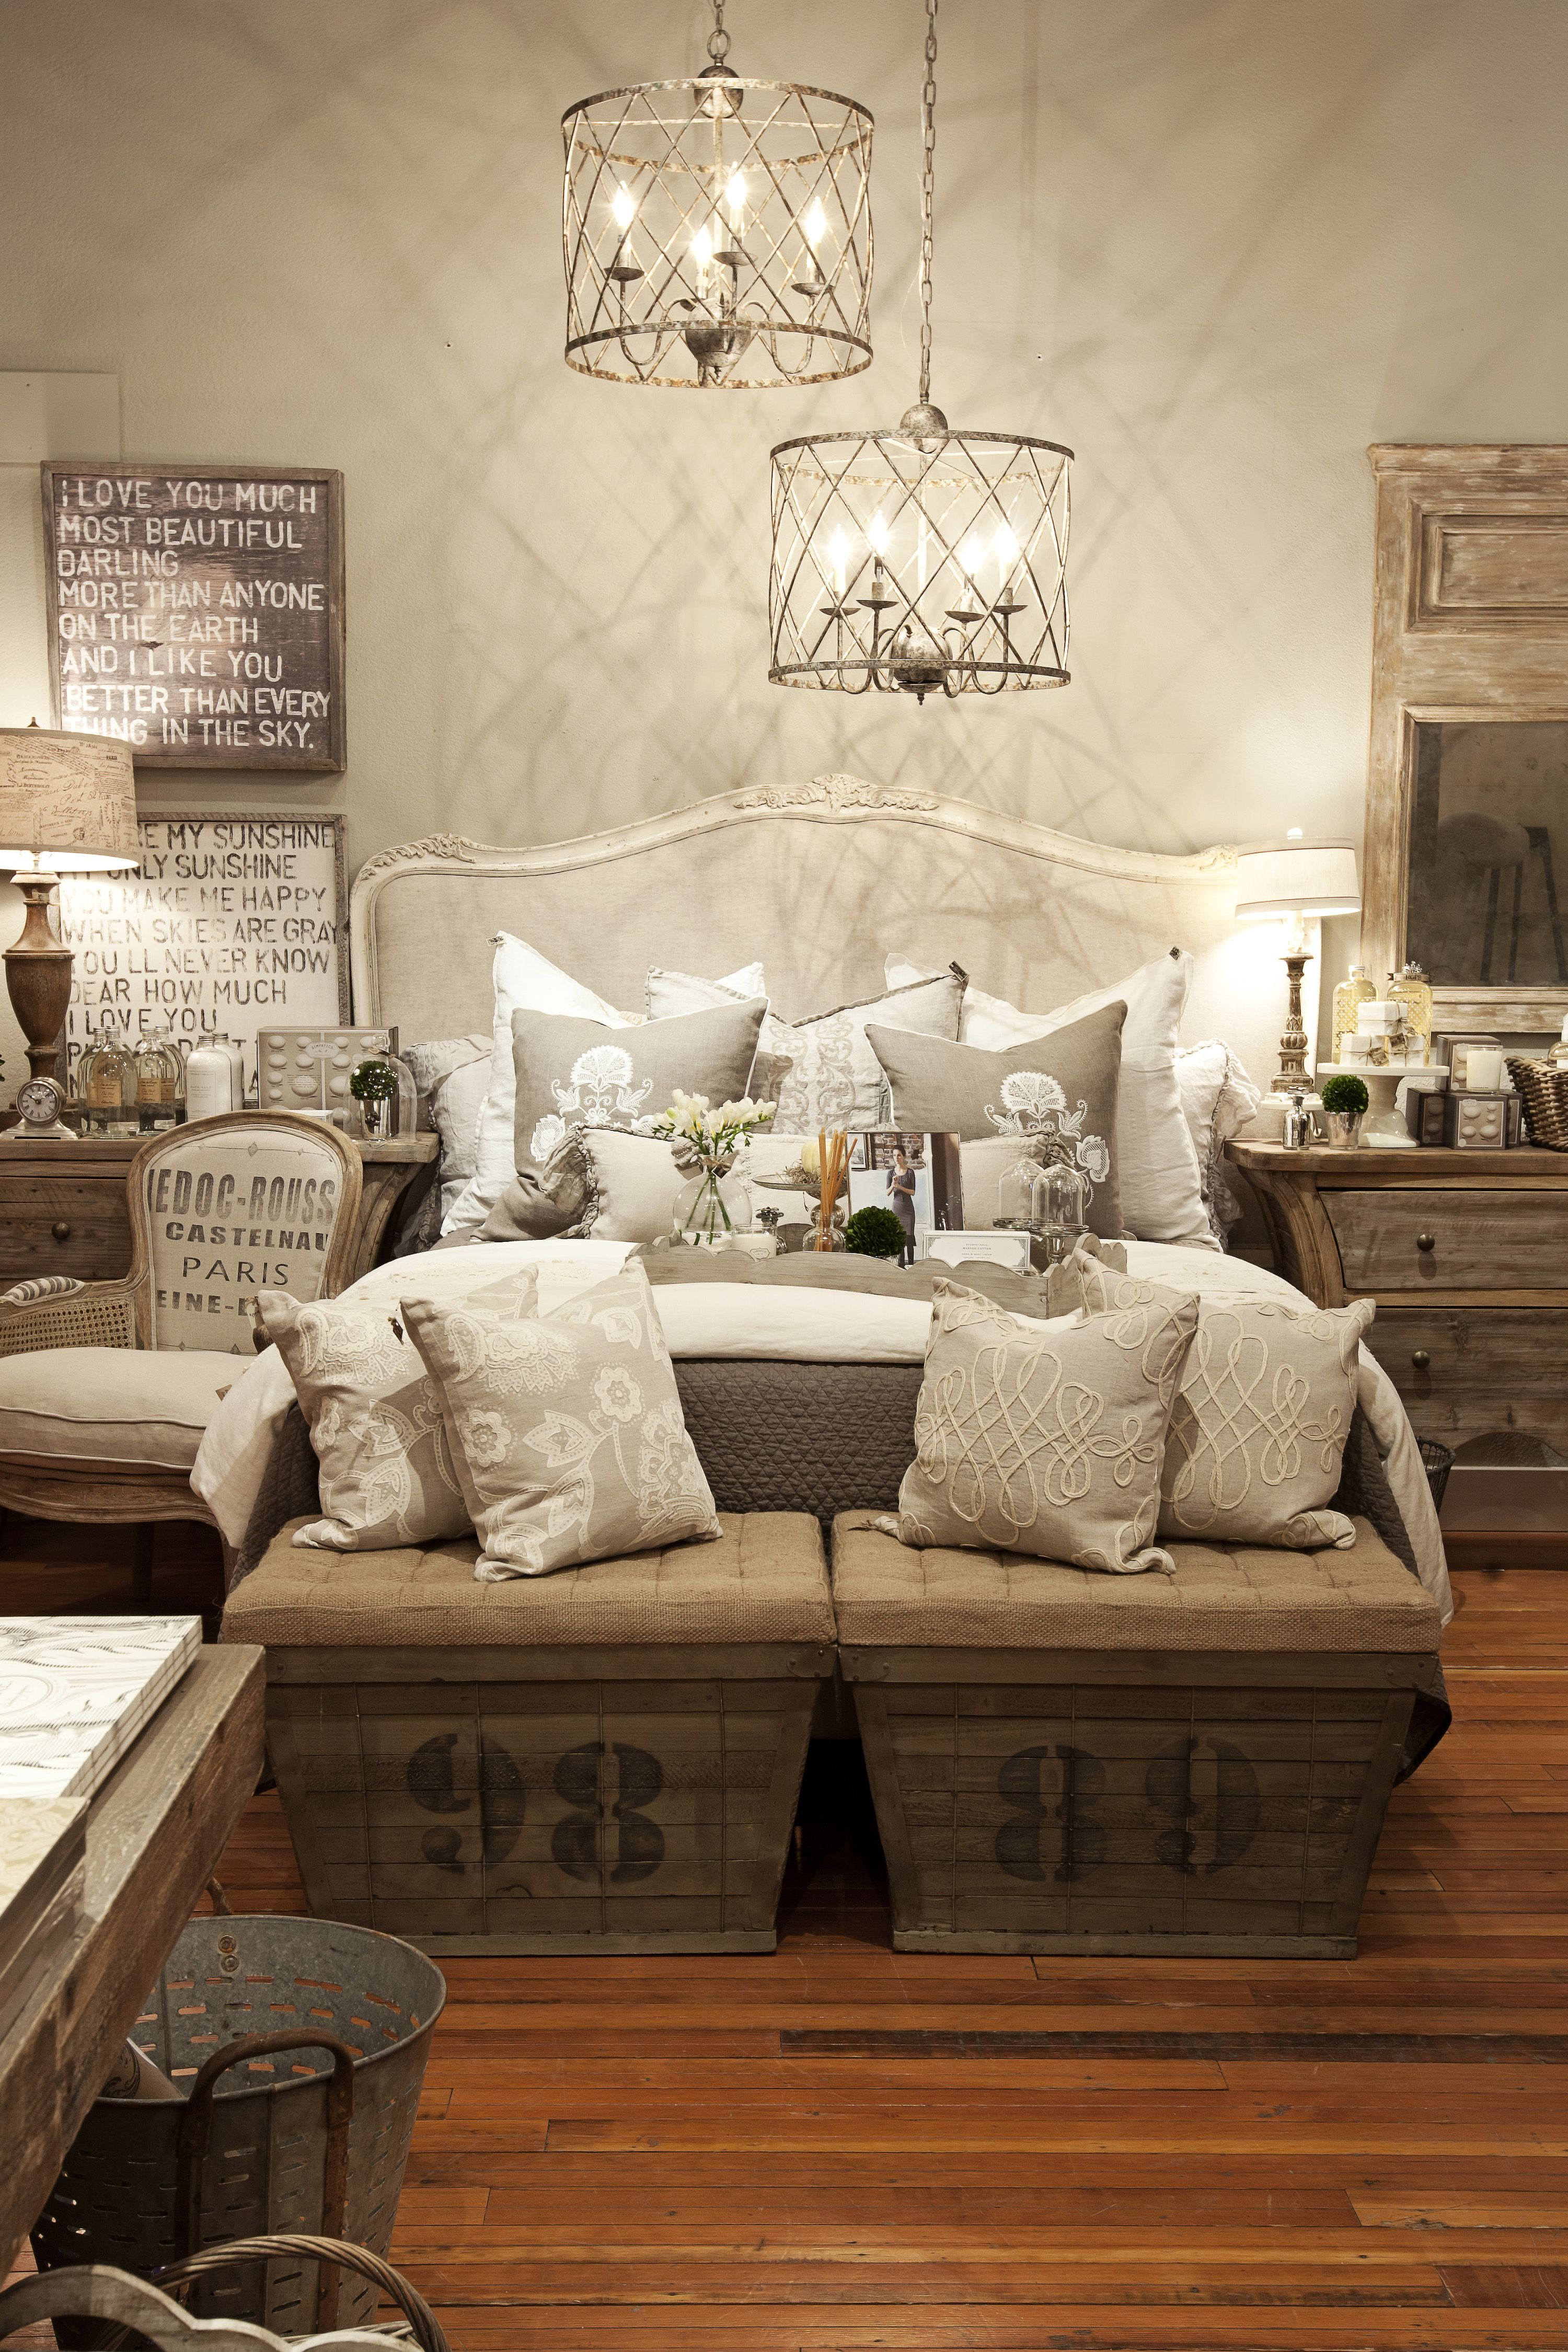 Sweet dream room. | Design Ideas | Pinterest | Dream rooms, Romantic ...